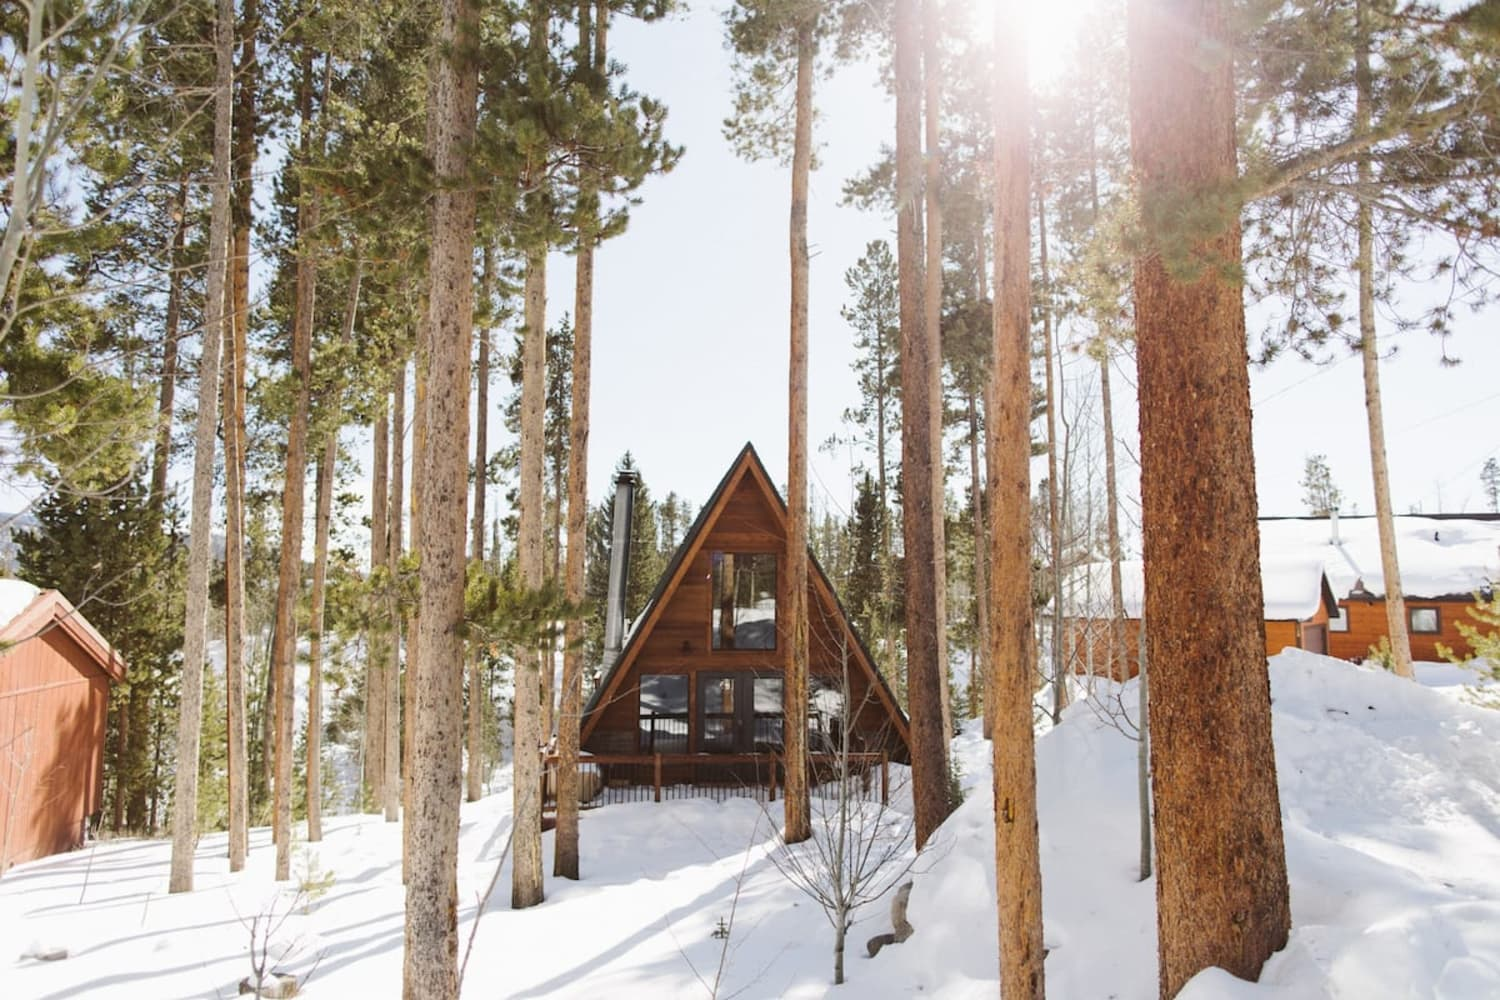 5 Airbnb Cabins That Are Perfect for Your Next Winter Getaway